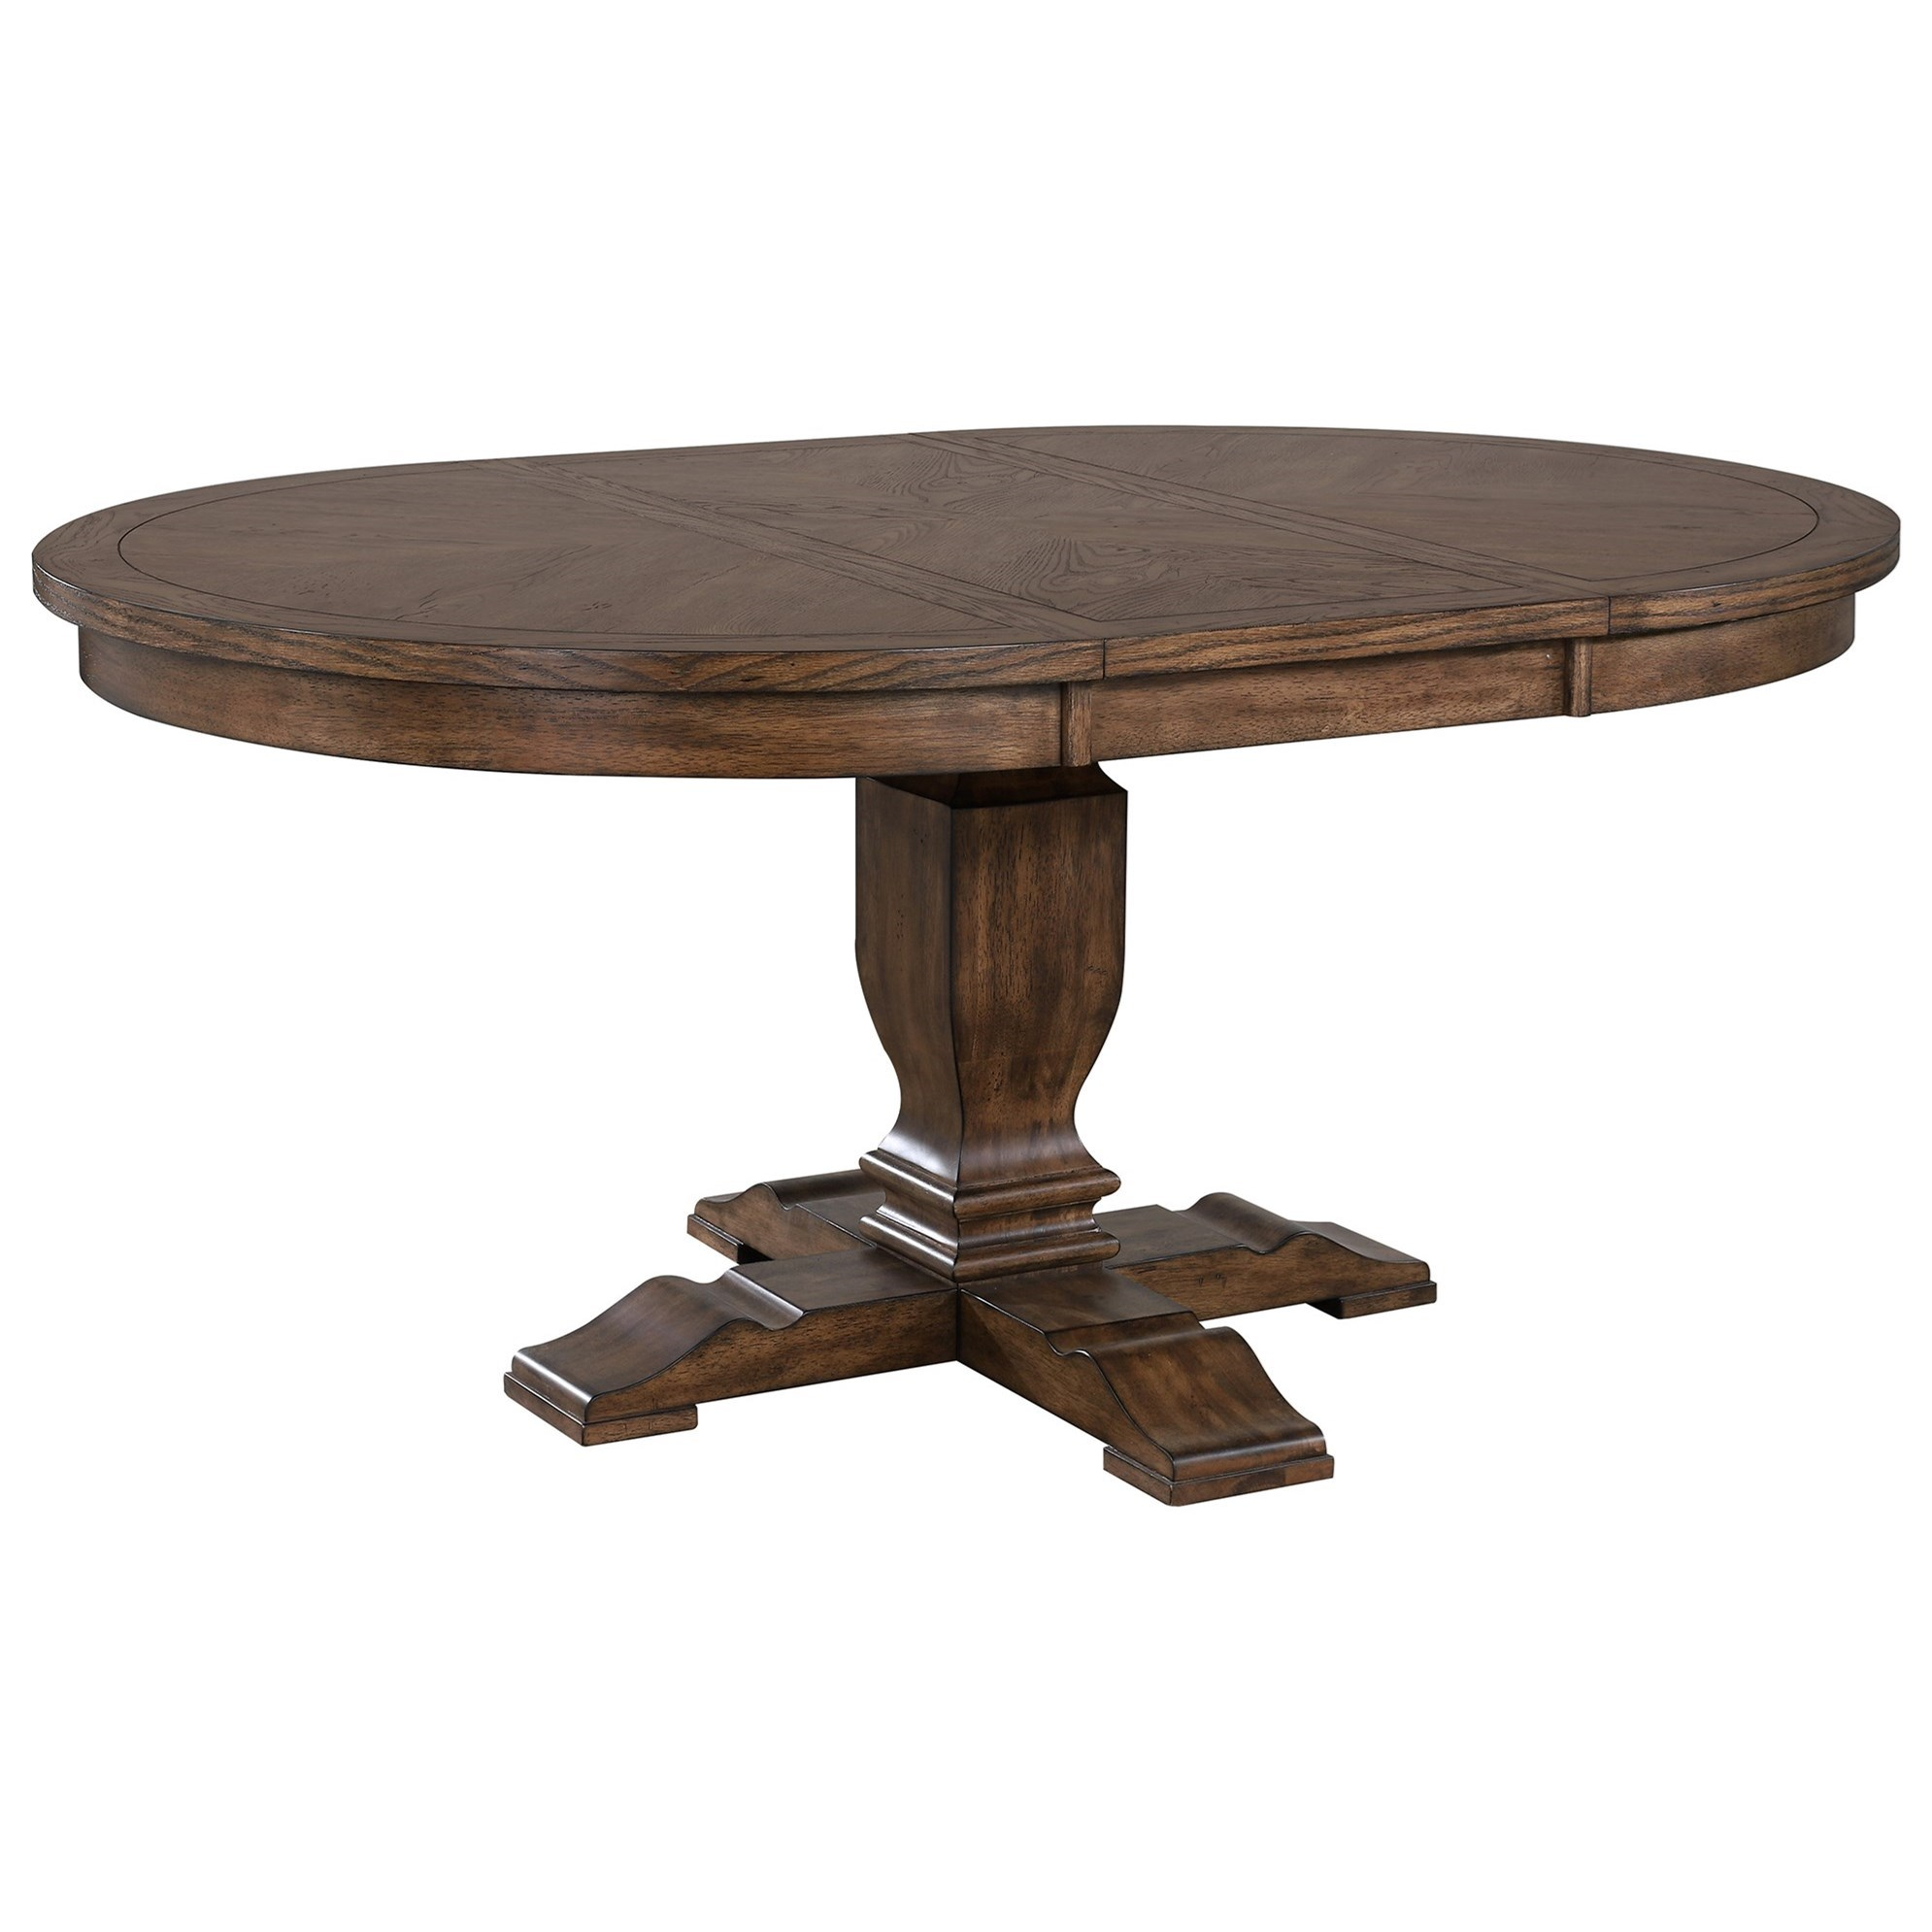 Utica Round Kitchen Table by Winners Only at Lindy's Furniture Company